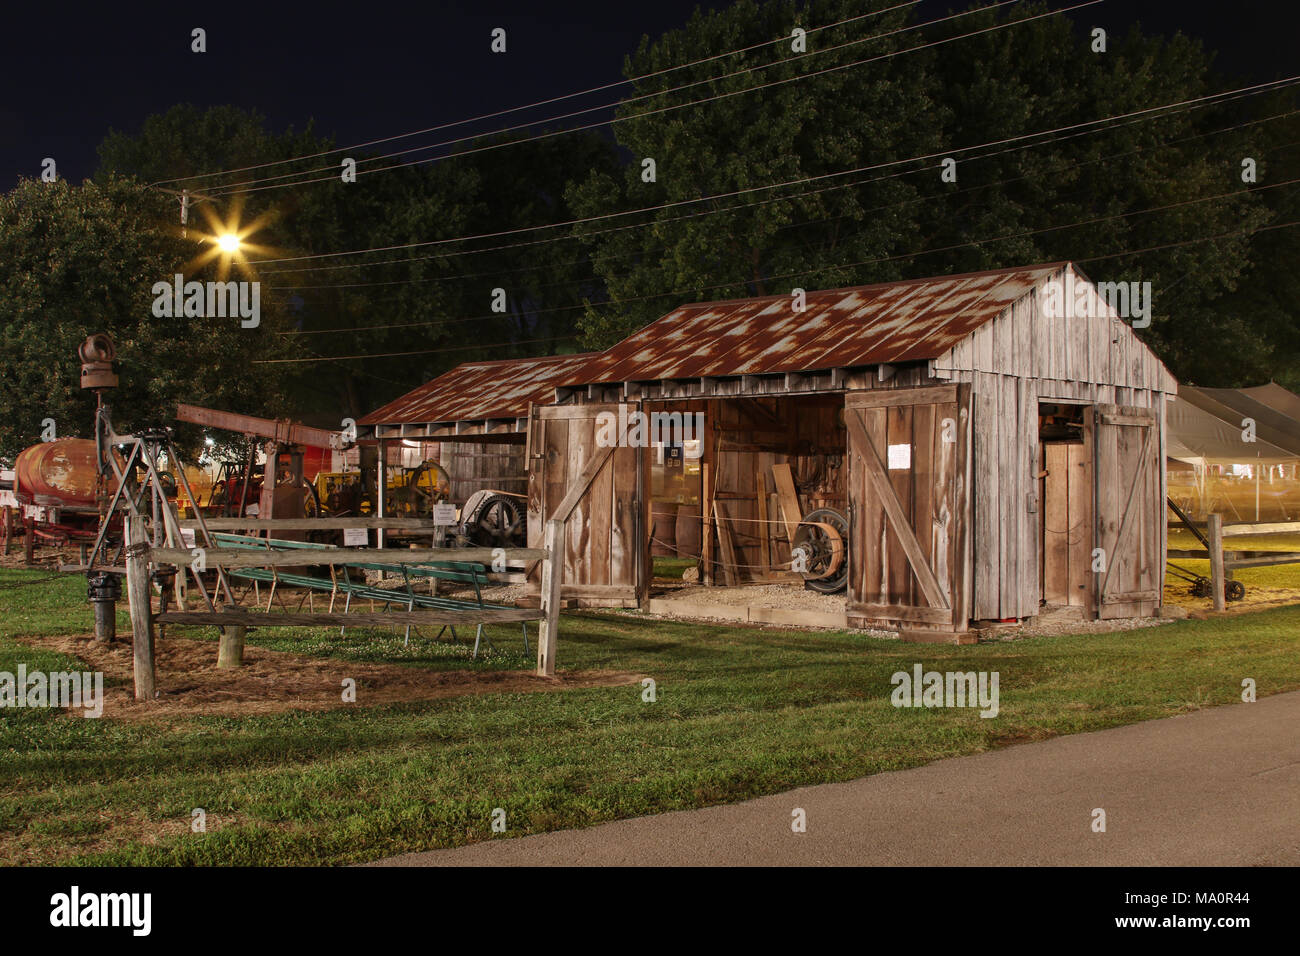 Antique Oilfield Exhibit at night. Canfield Fair. Mahoning County Fair. Canfield, Youngstown, Ohio, USA. - Stock Image